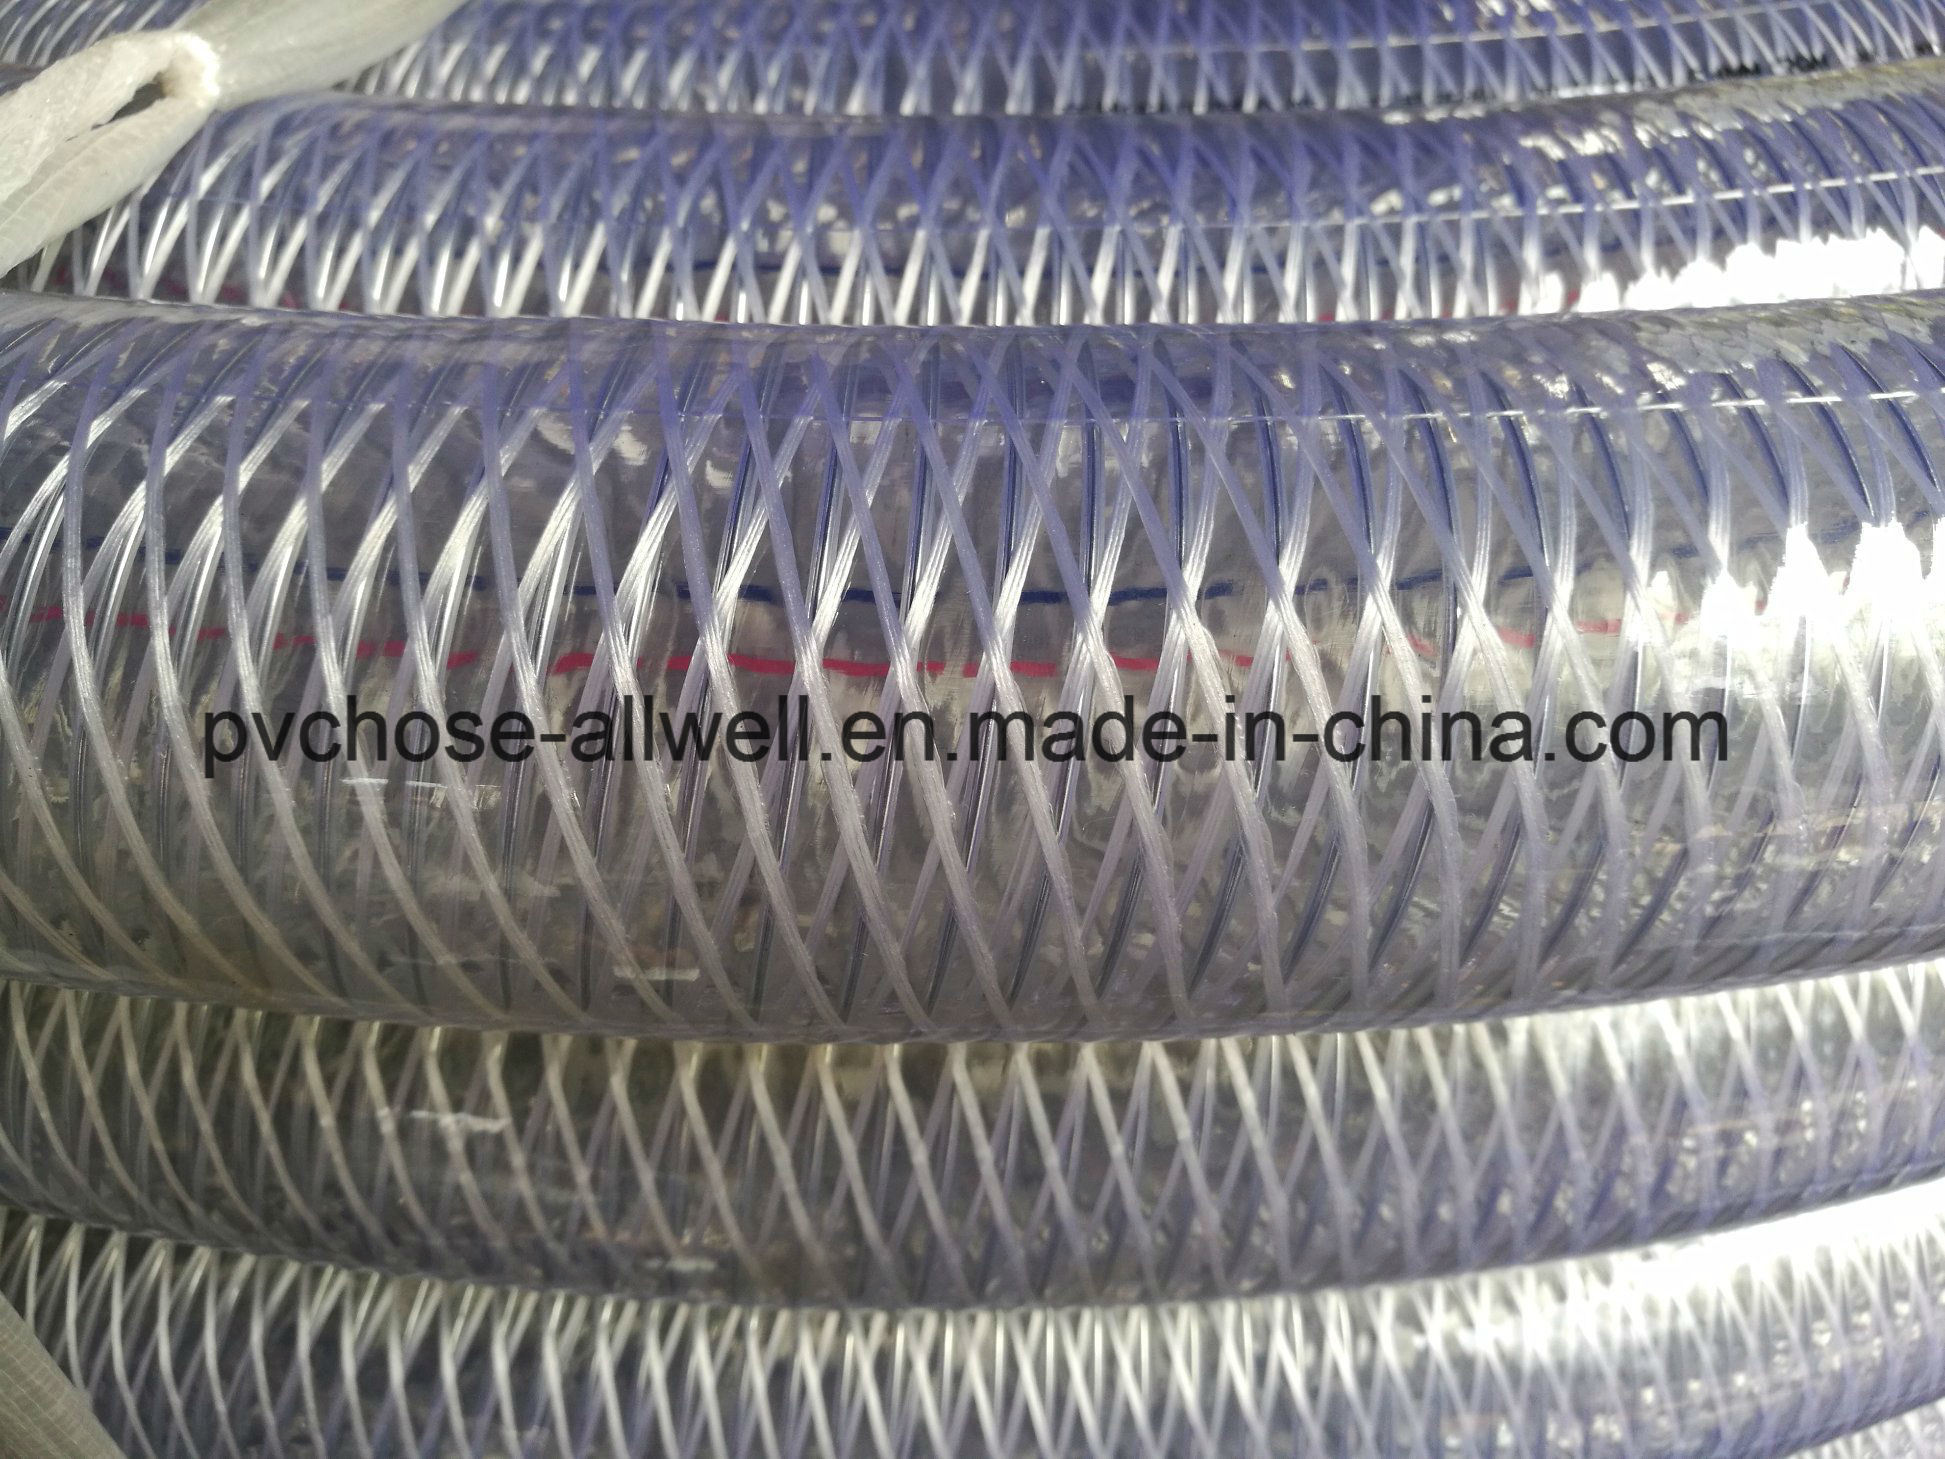 China plastic pvc clear transparent steel wire spiral